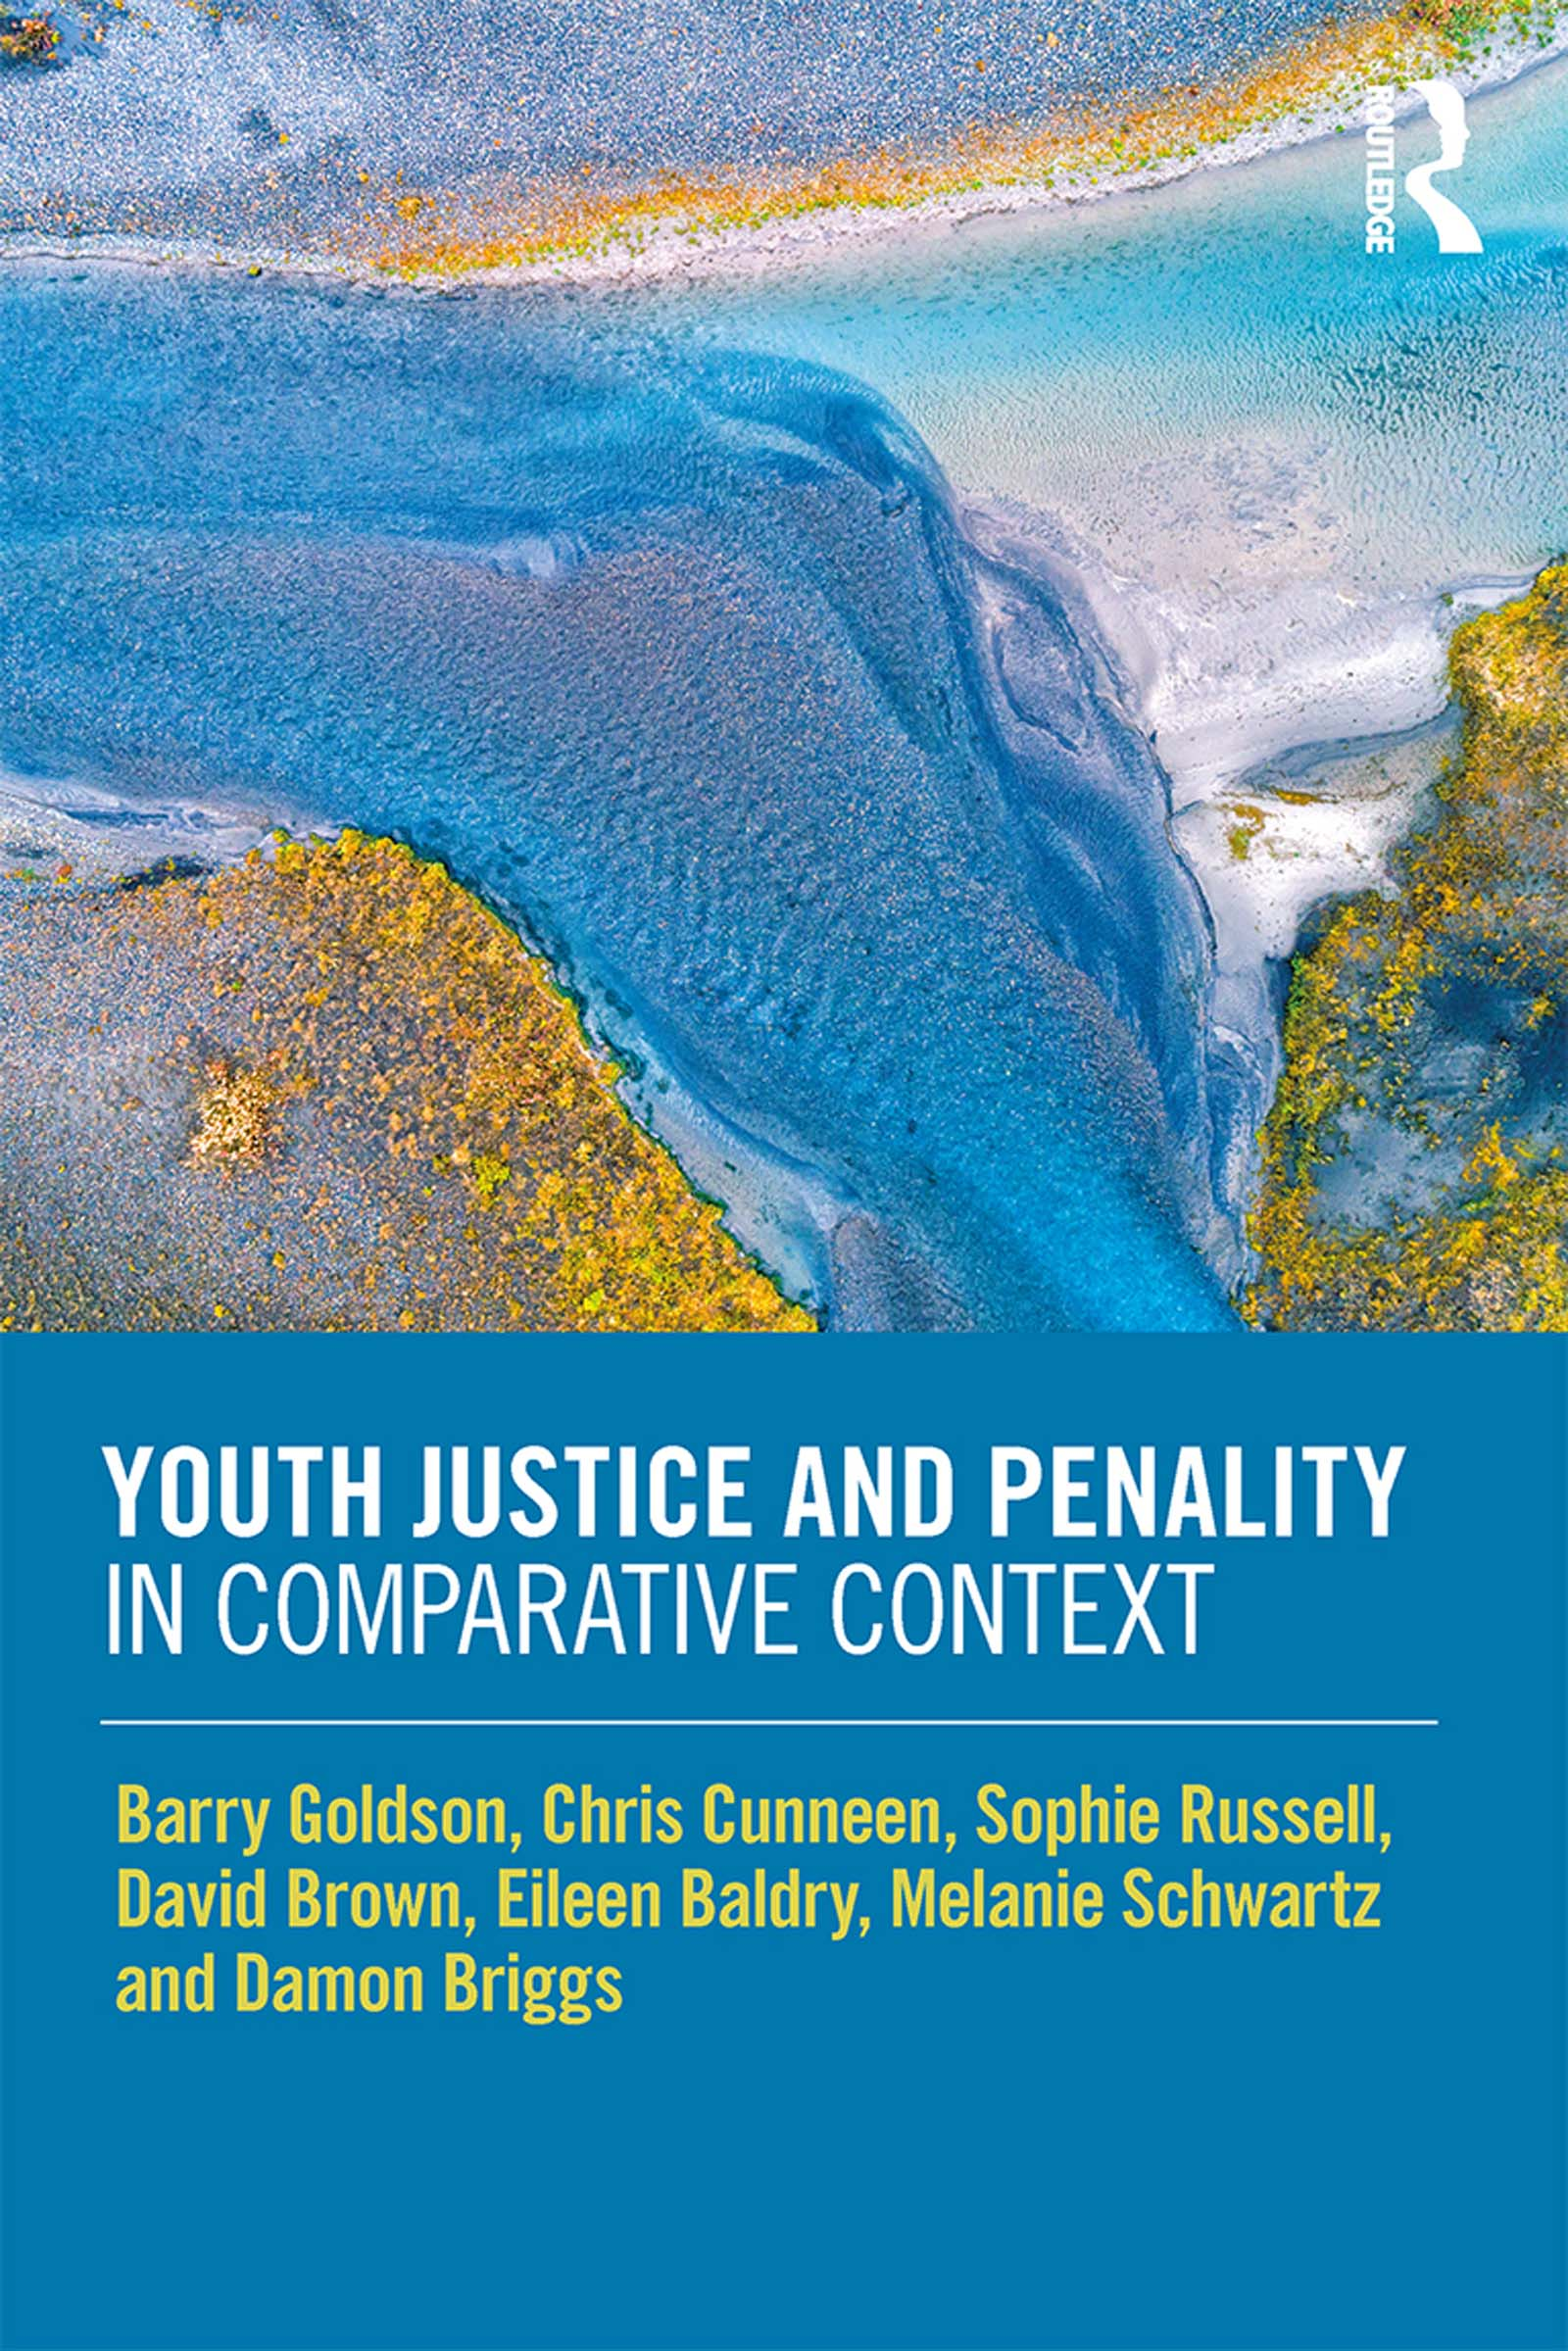 Recent histories and contemporary trends in comparative youth justice and penality